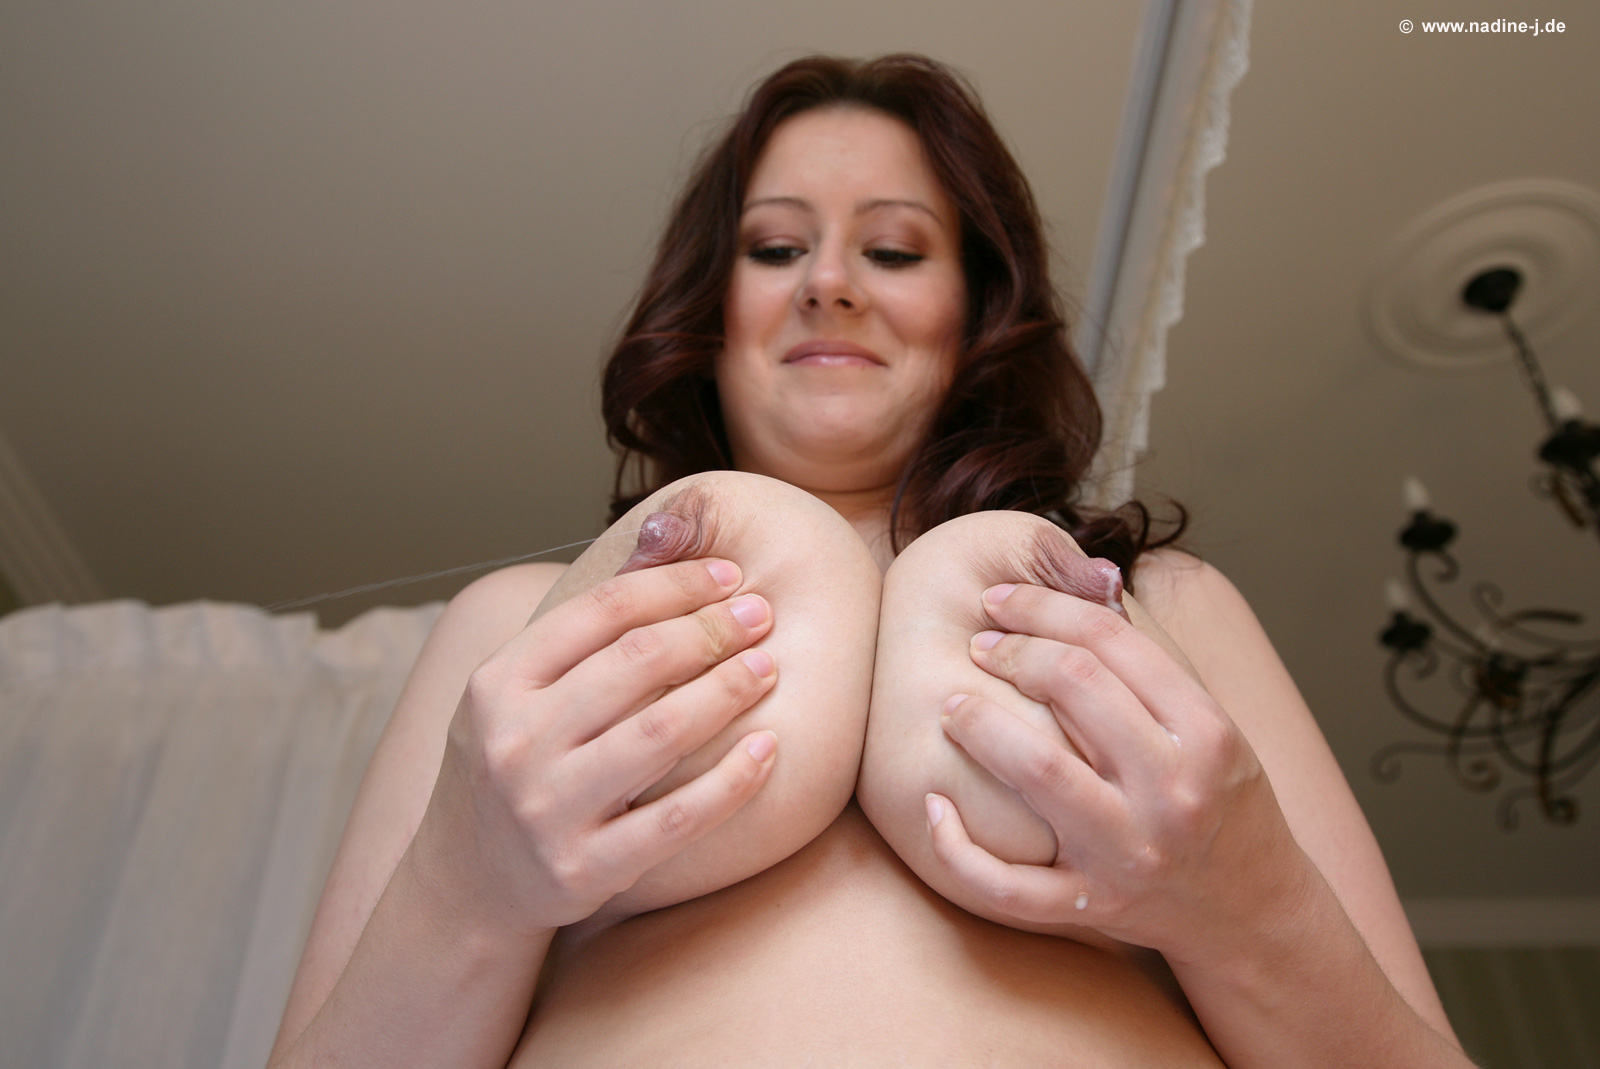 Natural boobs with puffy nipples